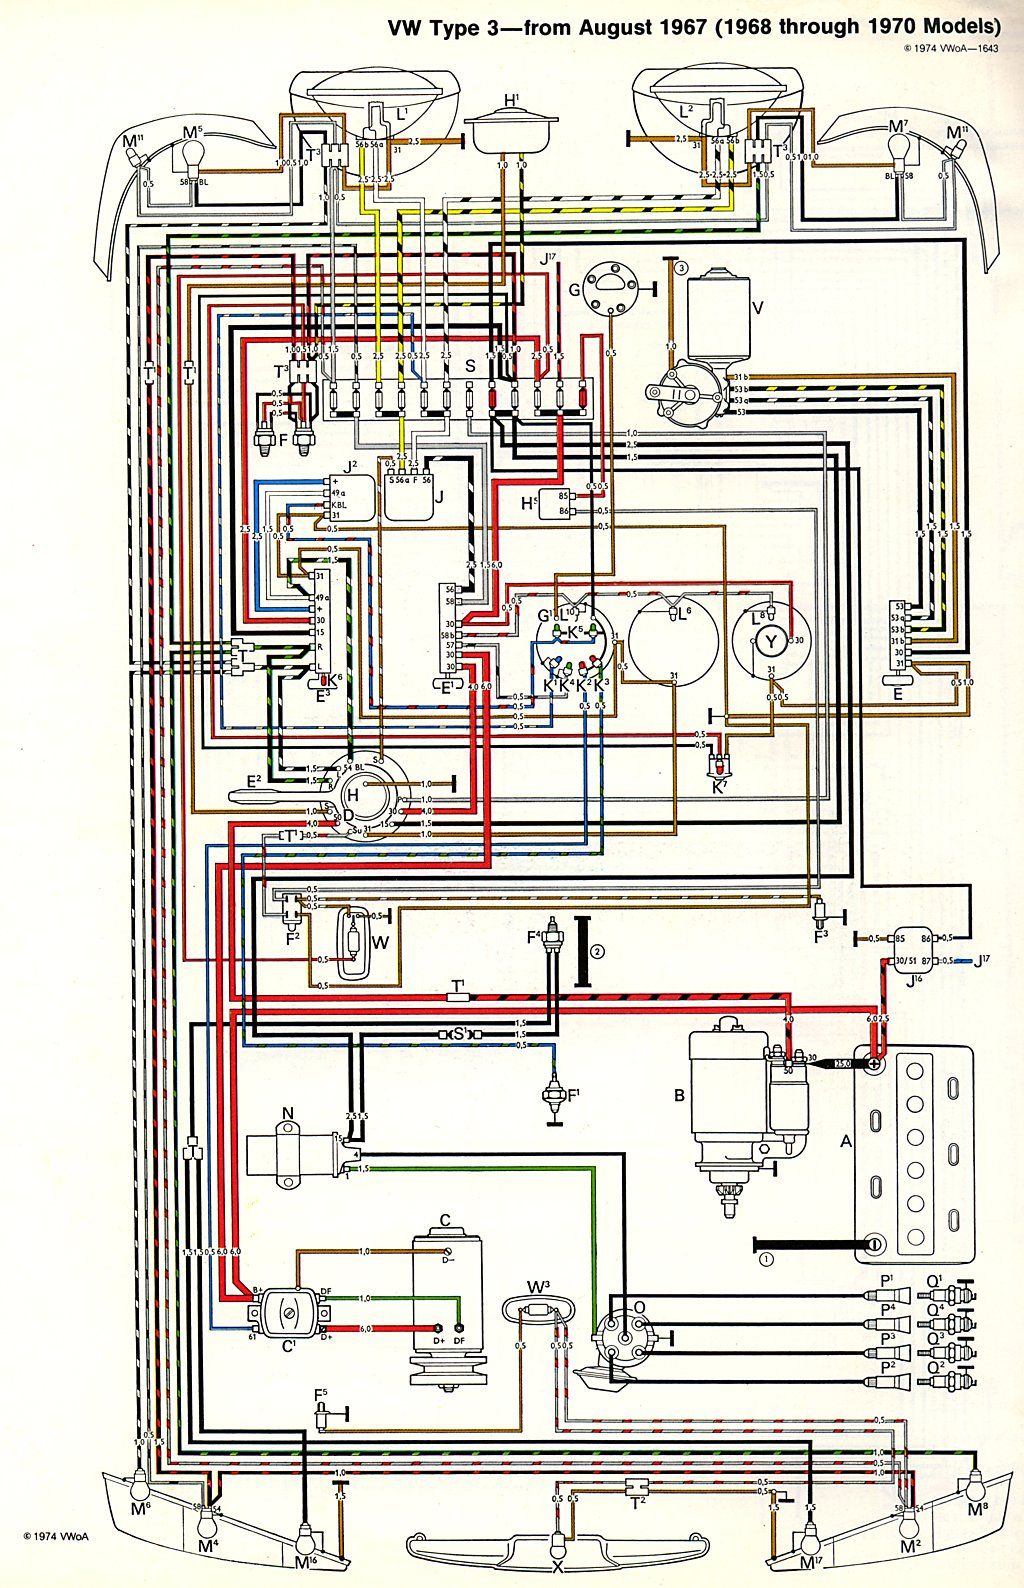 thesamba com type 3 wiring diagrams 1971 VW Super Beetle Wiring Diagram Vw Type 3 Wiring Diagram #2